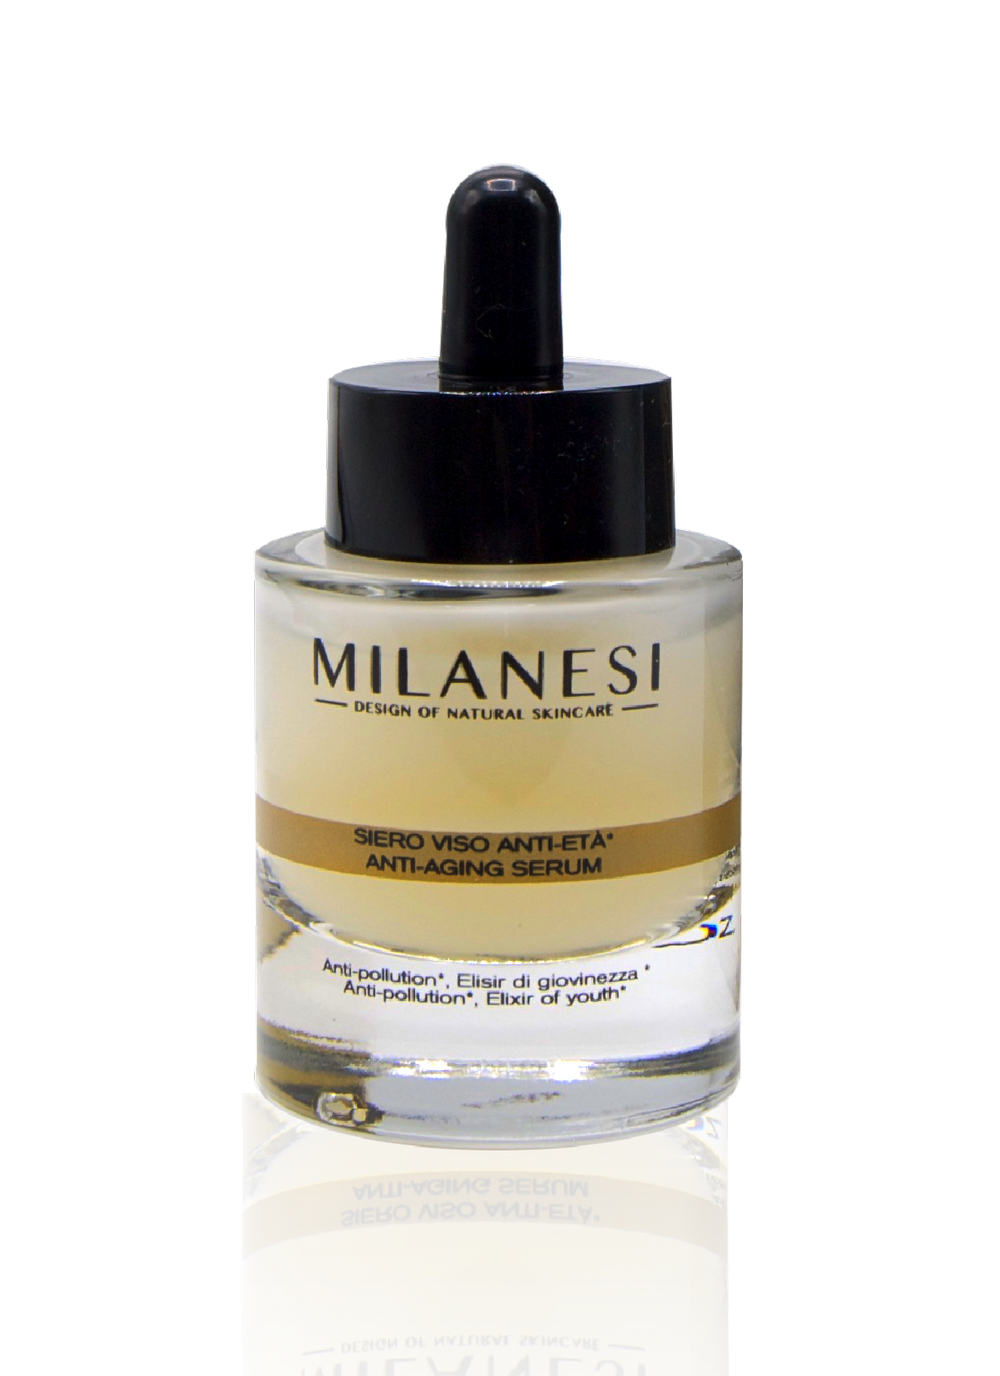 The montenapoleone anti-aging serum contains a precious ingredient: gold known for its anti-aging properties.